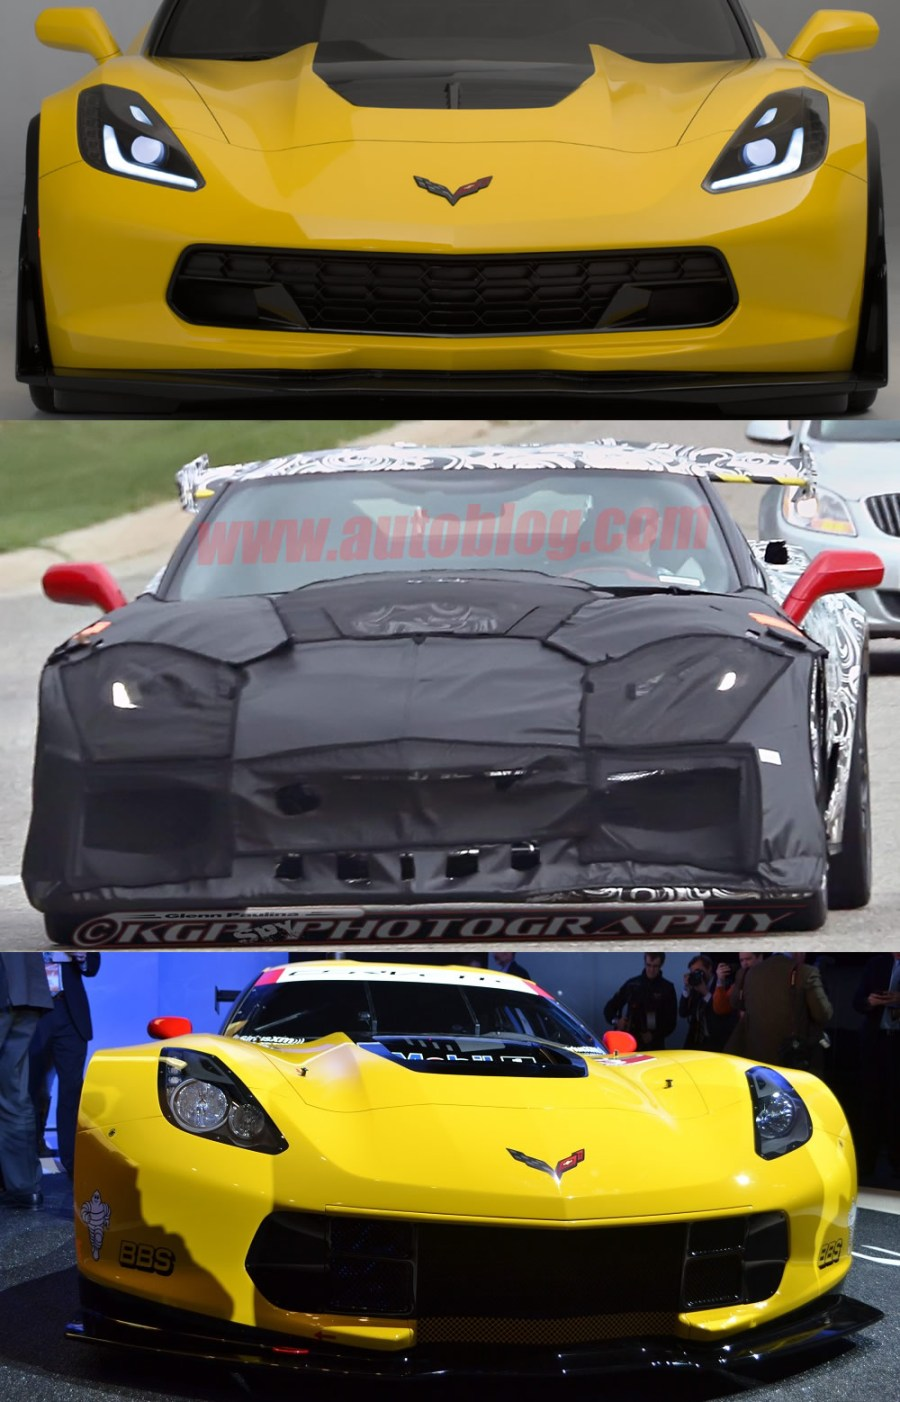 2015 Z06 on top, 2018 Corvette ZR1 Test Mule in the middle, Corvette Racing's C7.R on the bottom.